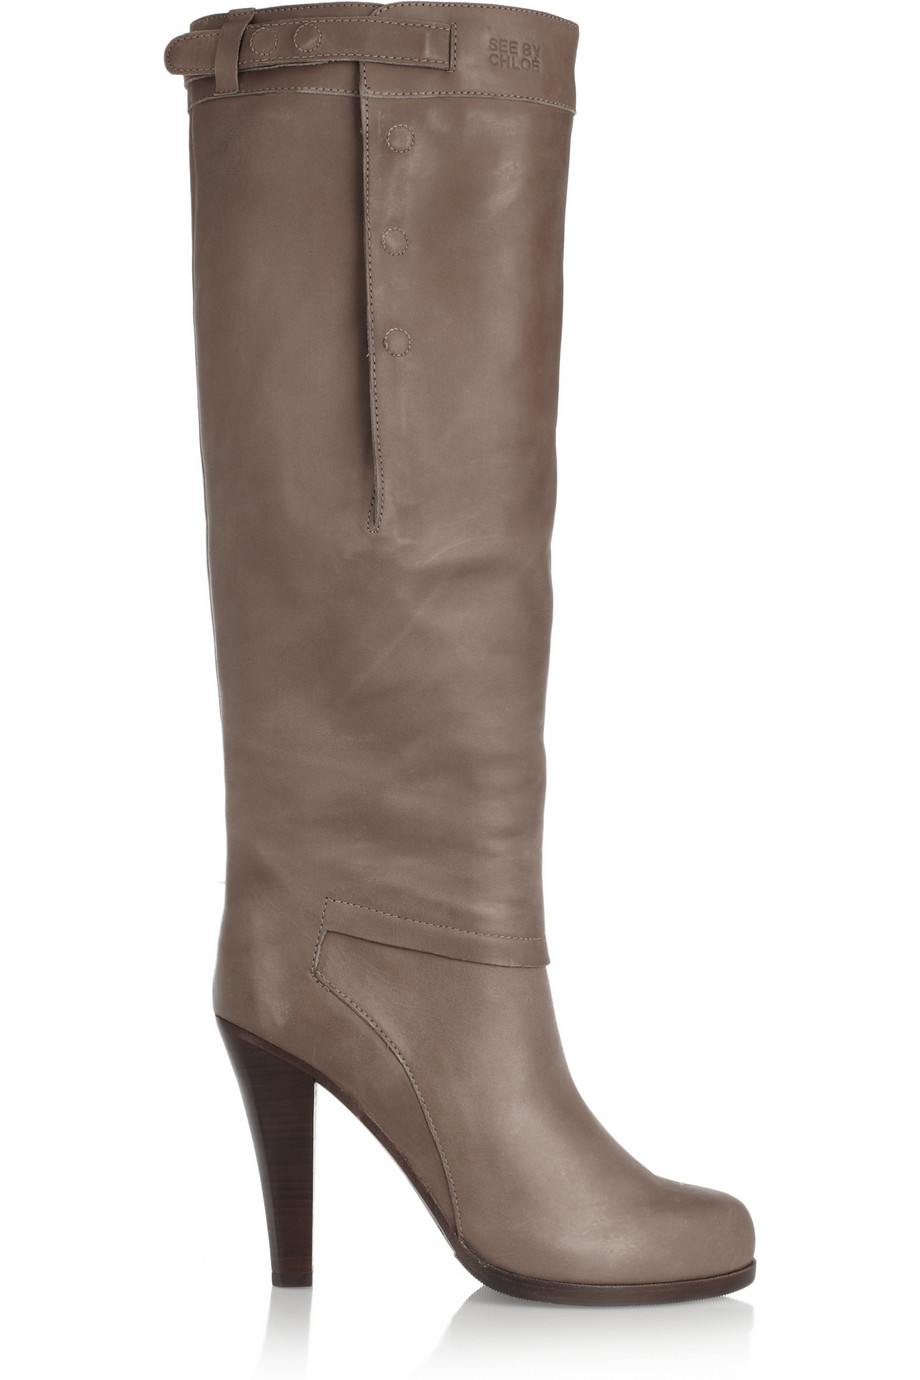 Chloé Distressed Knee-High Boots newest cheap price outlet wide range of free shipping finishline cheap sale recommend geEv0li